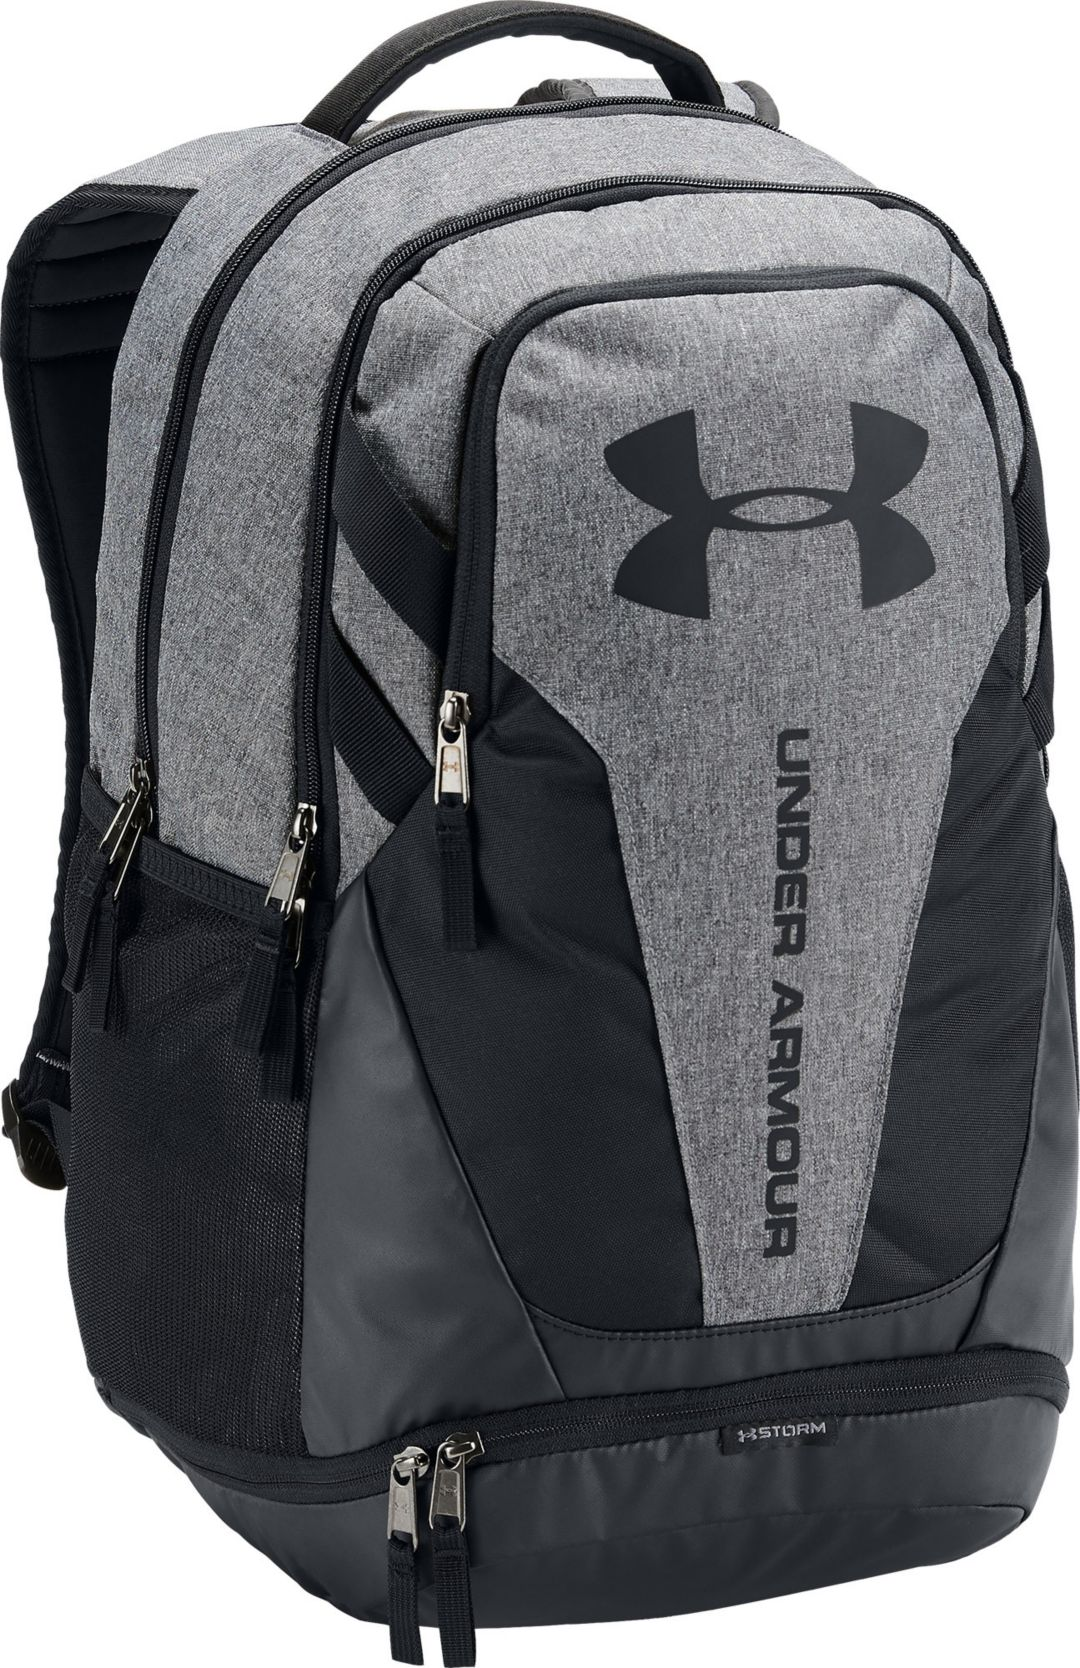 67604124cc Under Armour Hustle 3.0 Backpack | Best Price Guarantee at DICK'S